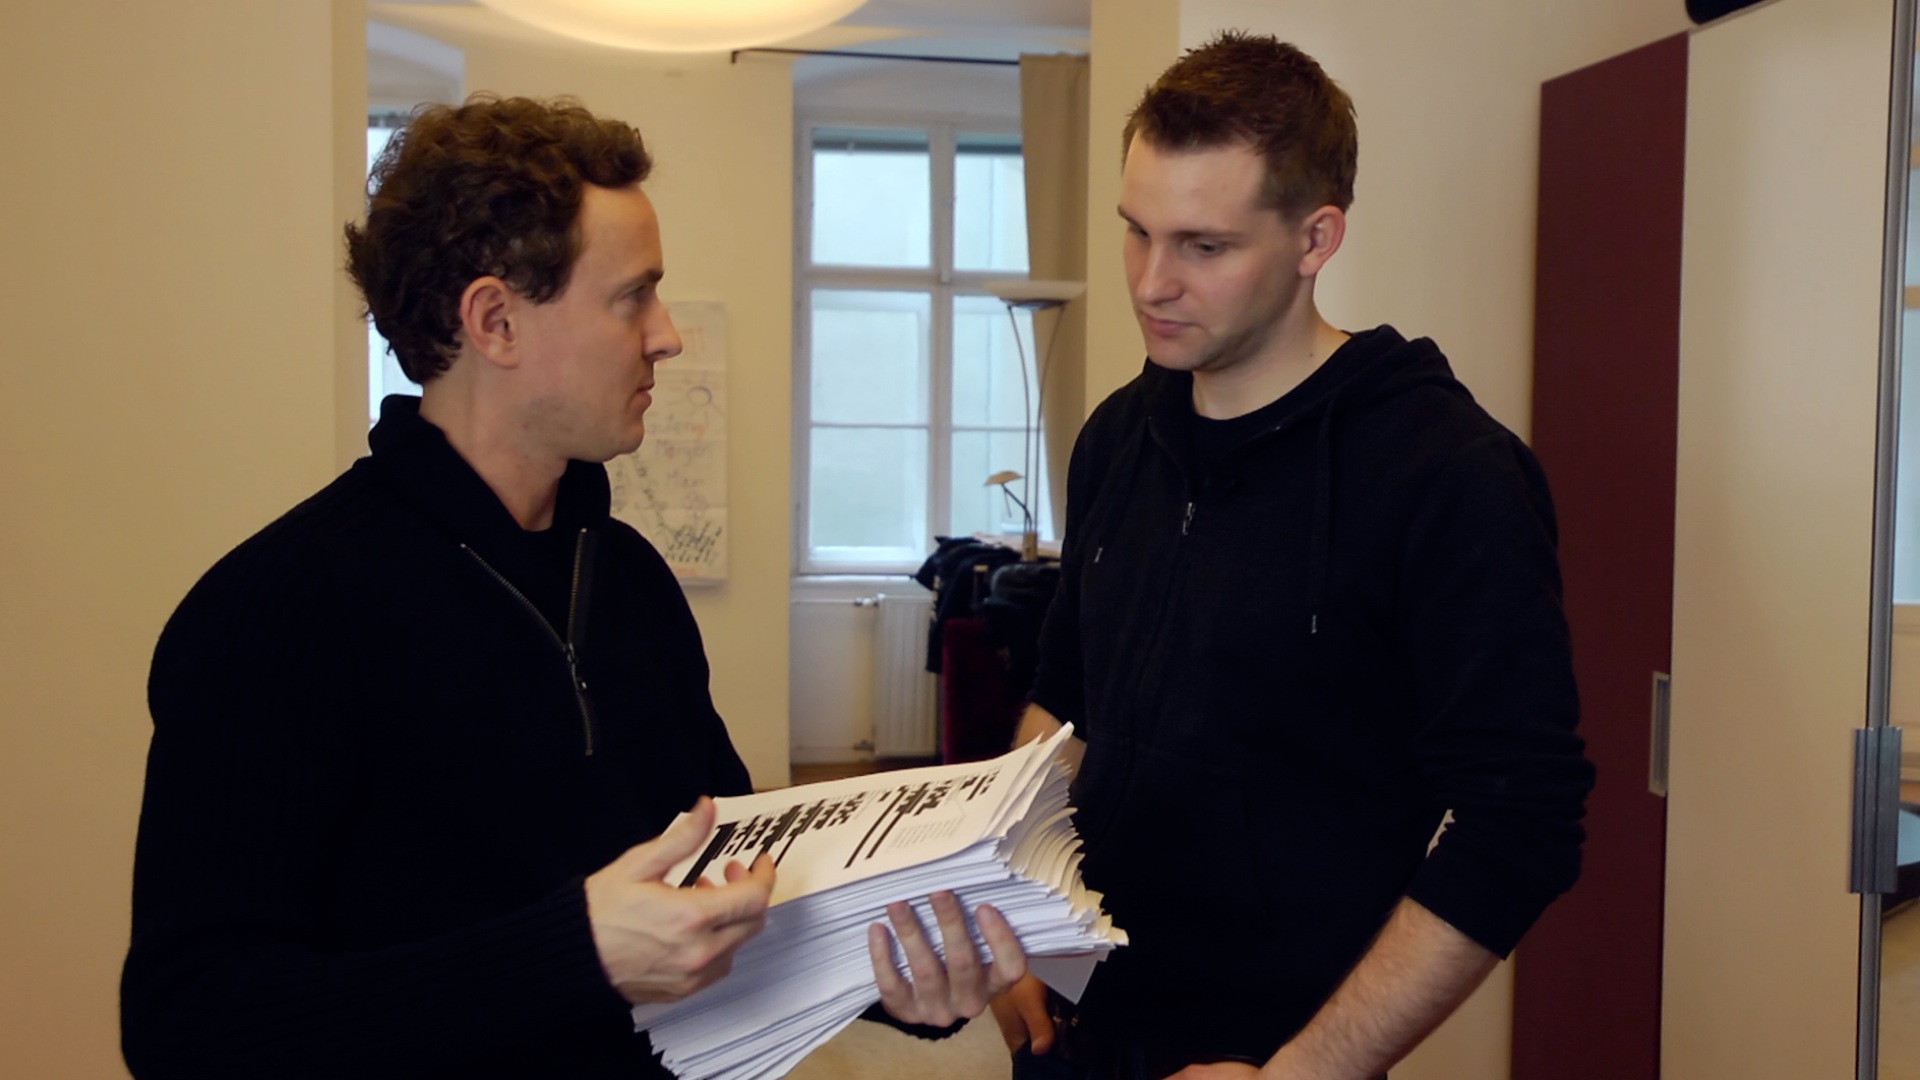 Filmmaker Cullen Hoback (left) interviewed Max Schrems, an Austrian law student and activist, in Vienna.